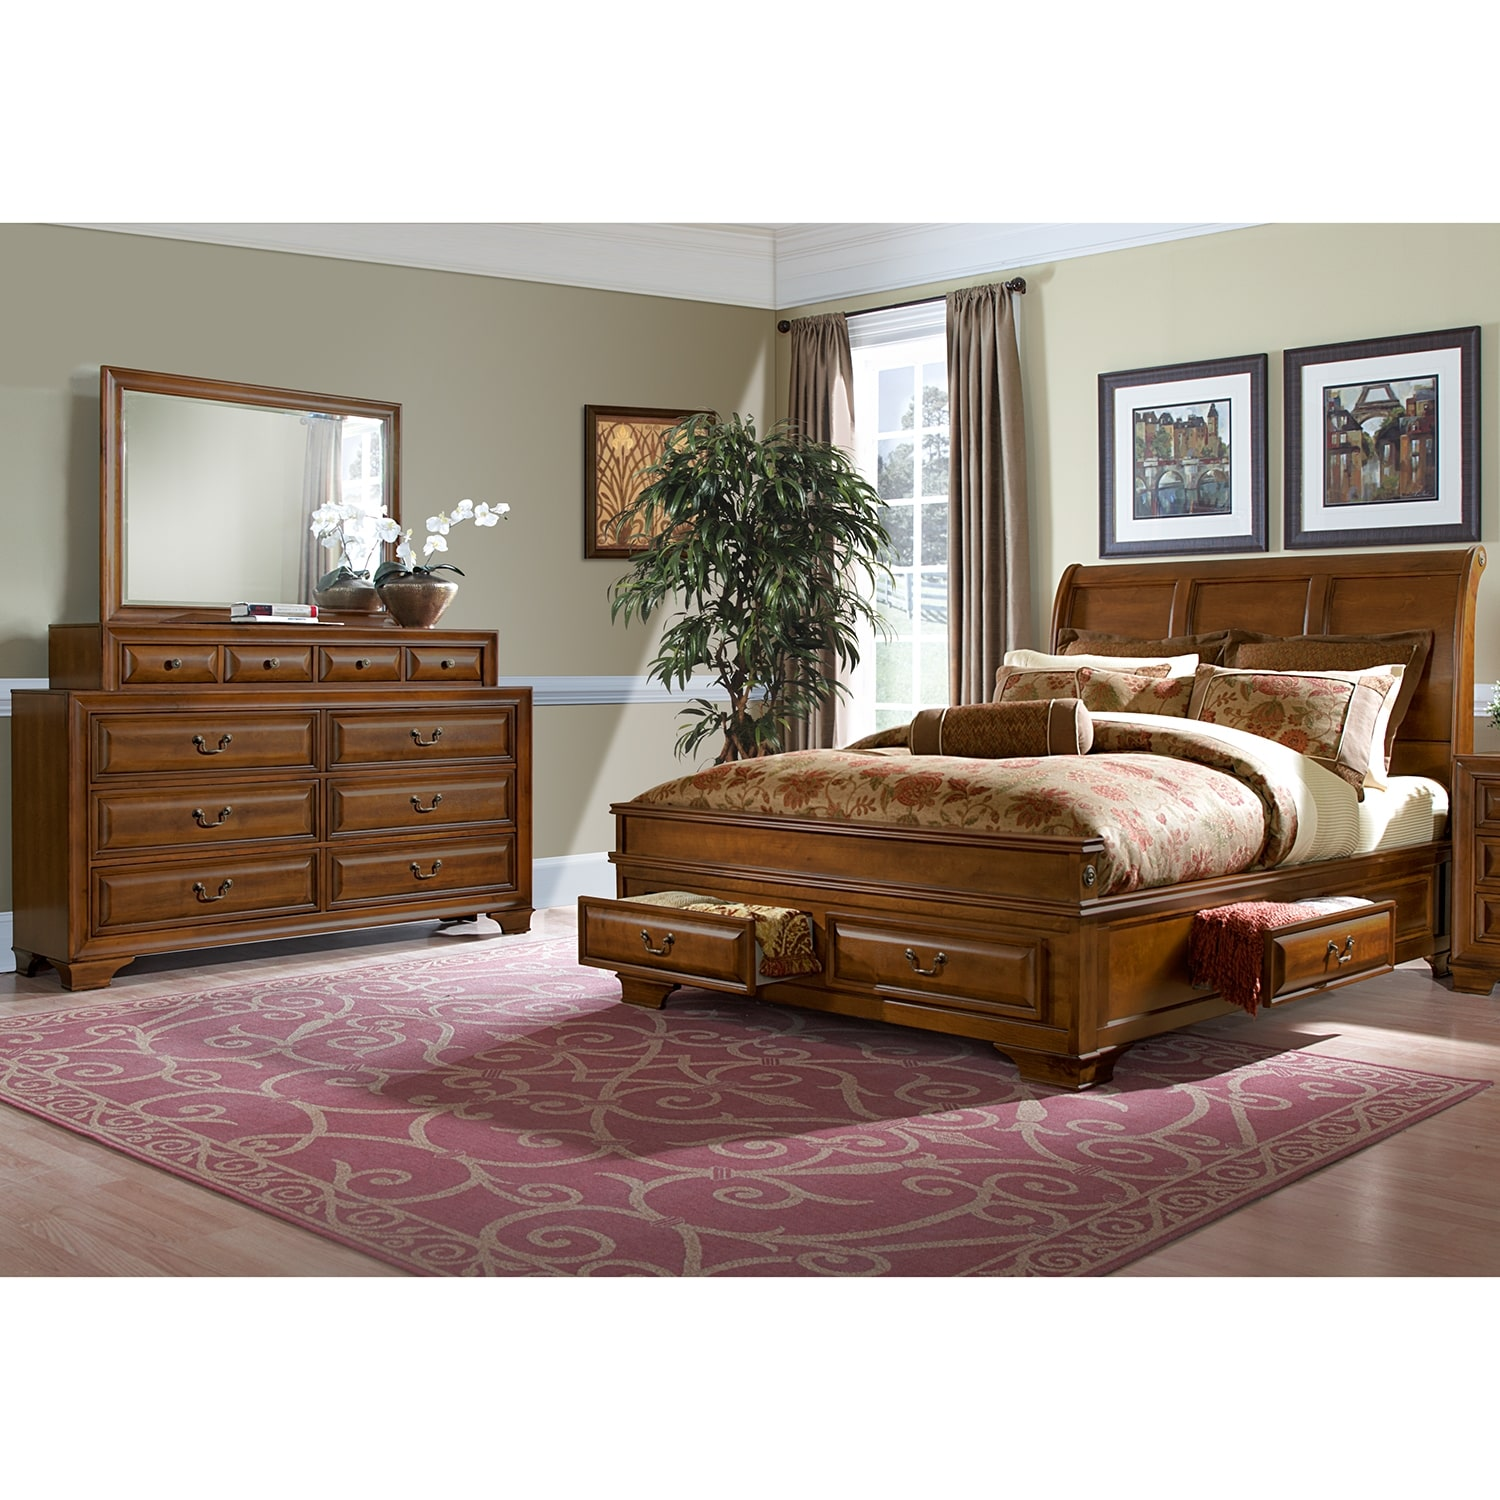 Sanibelle 5-Piece Queen Storage Bedroom Set - Pine